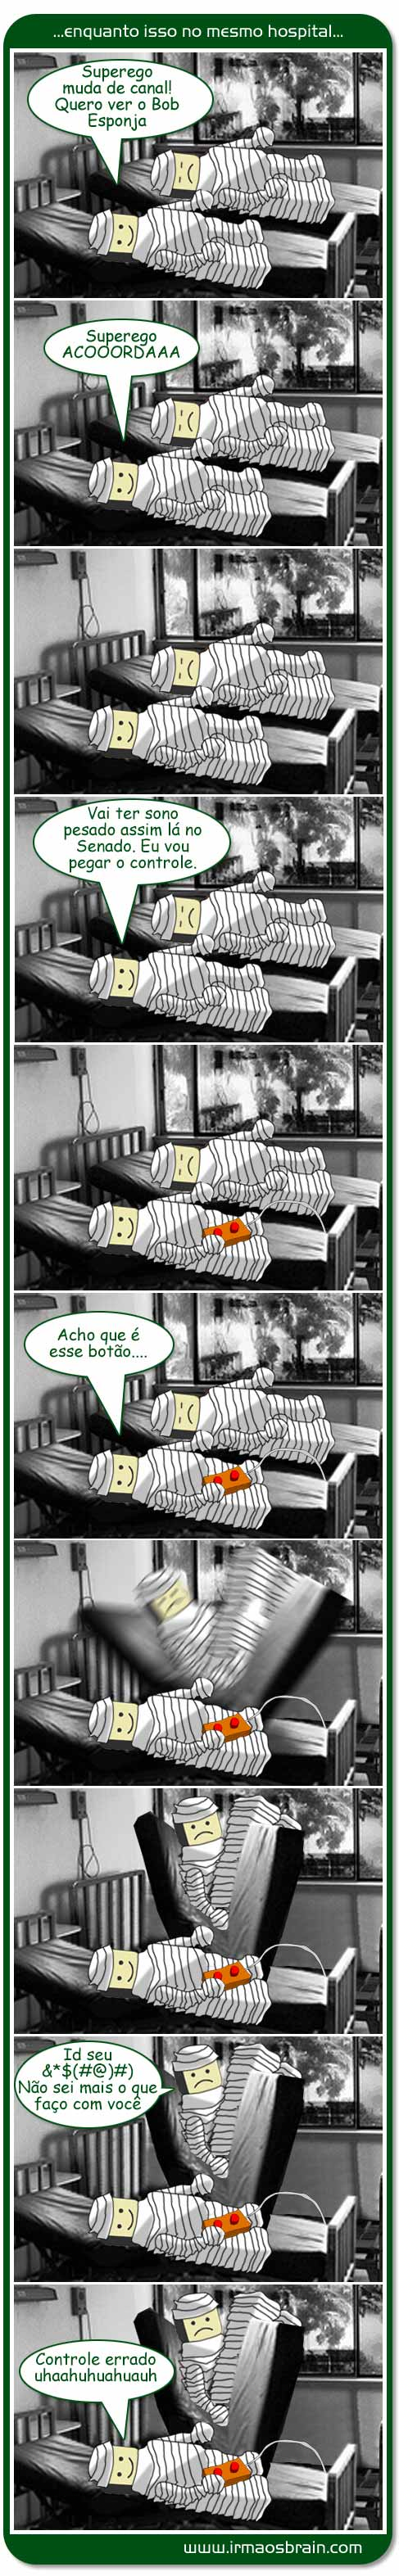 Irmaos Brain Cama Hospital